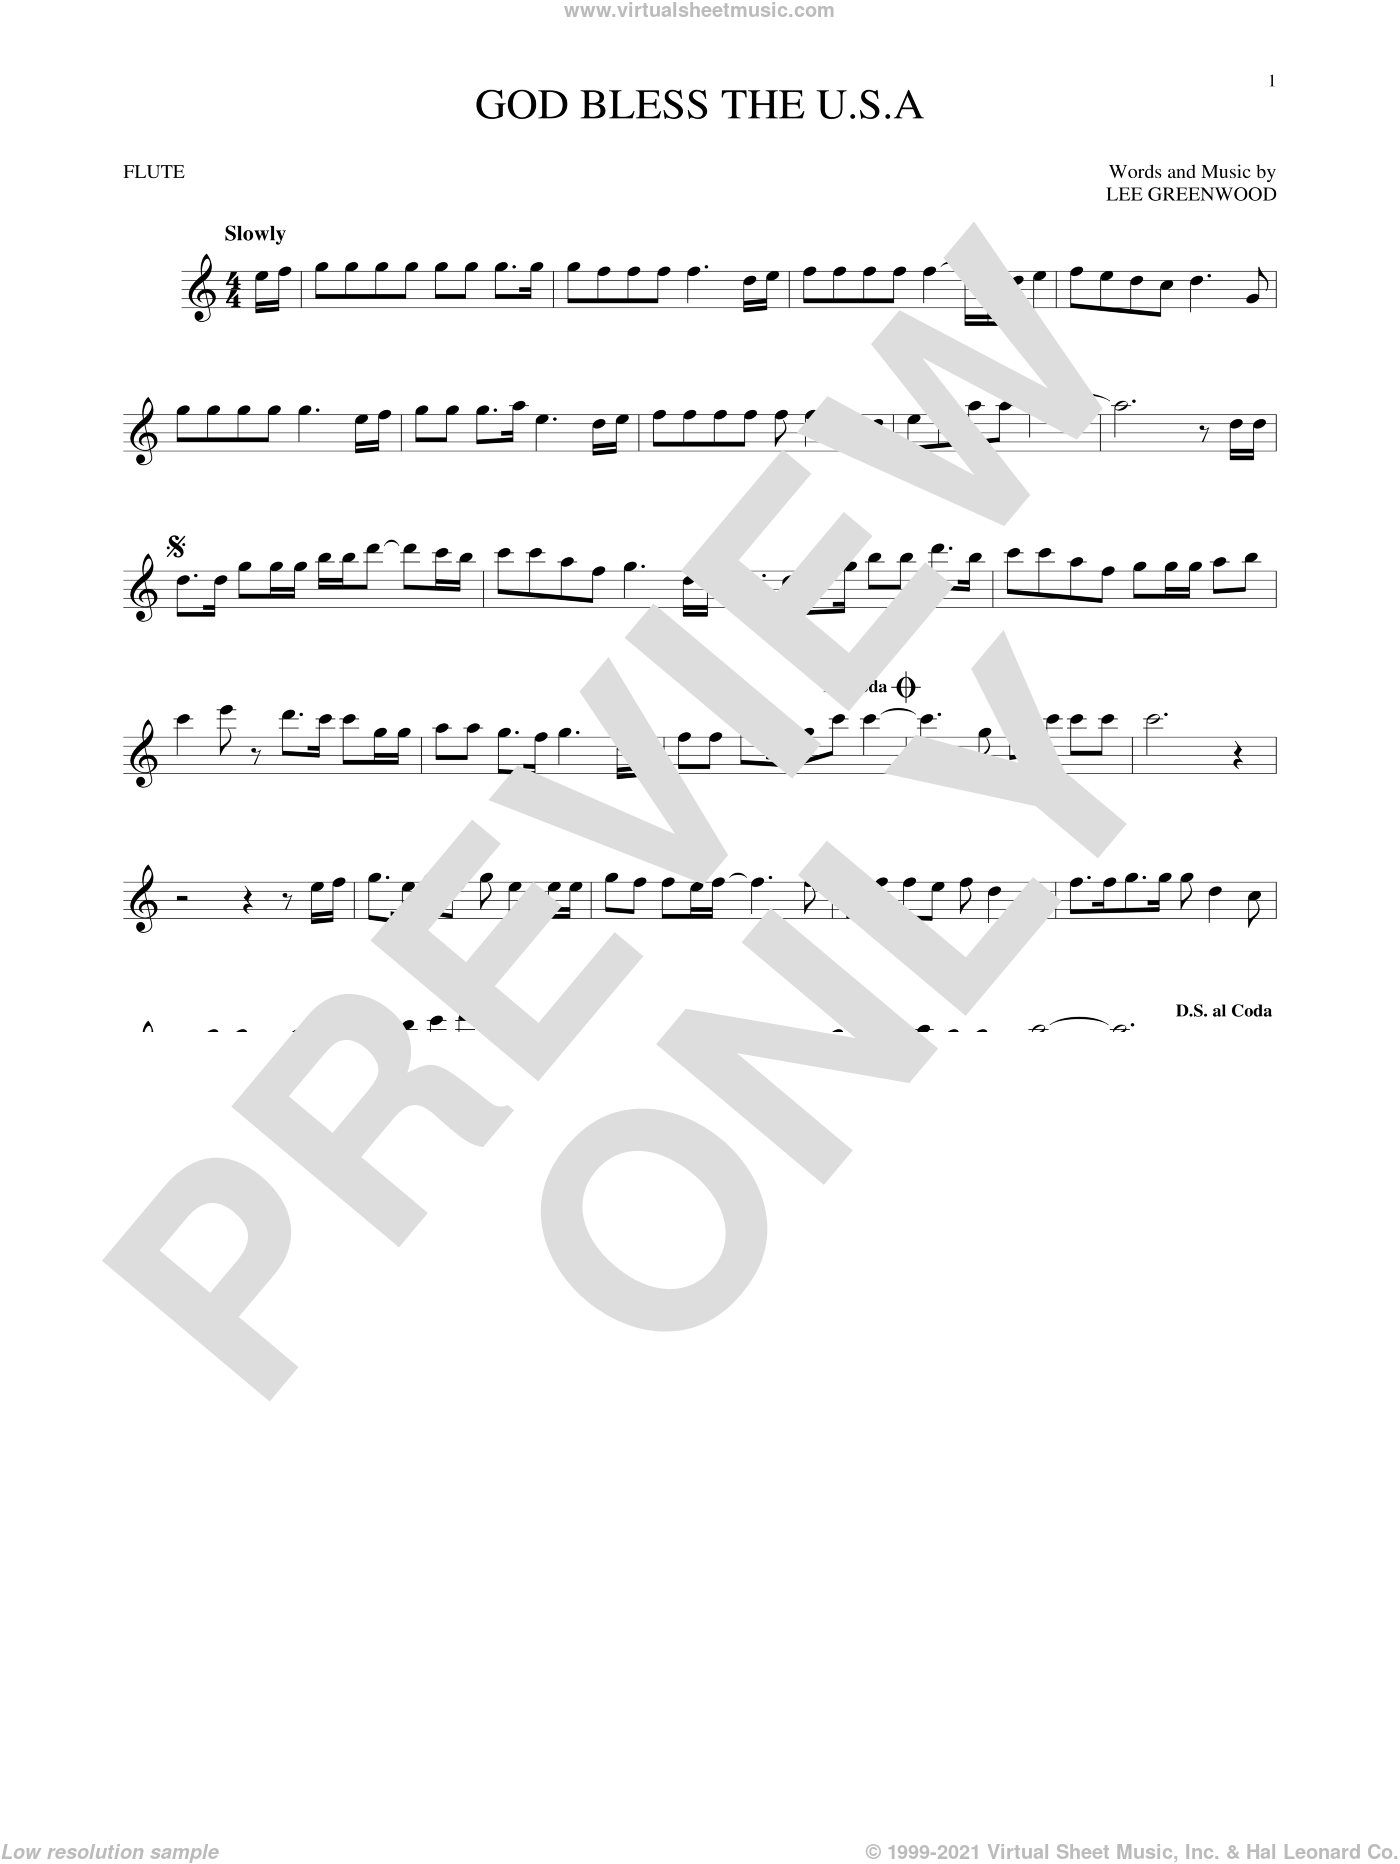 God Bless The U.S.A. sheet music for flute solo by Lee Greenwood, intermediate. Score Image Preview.